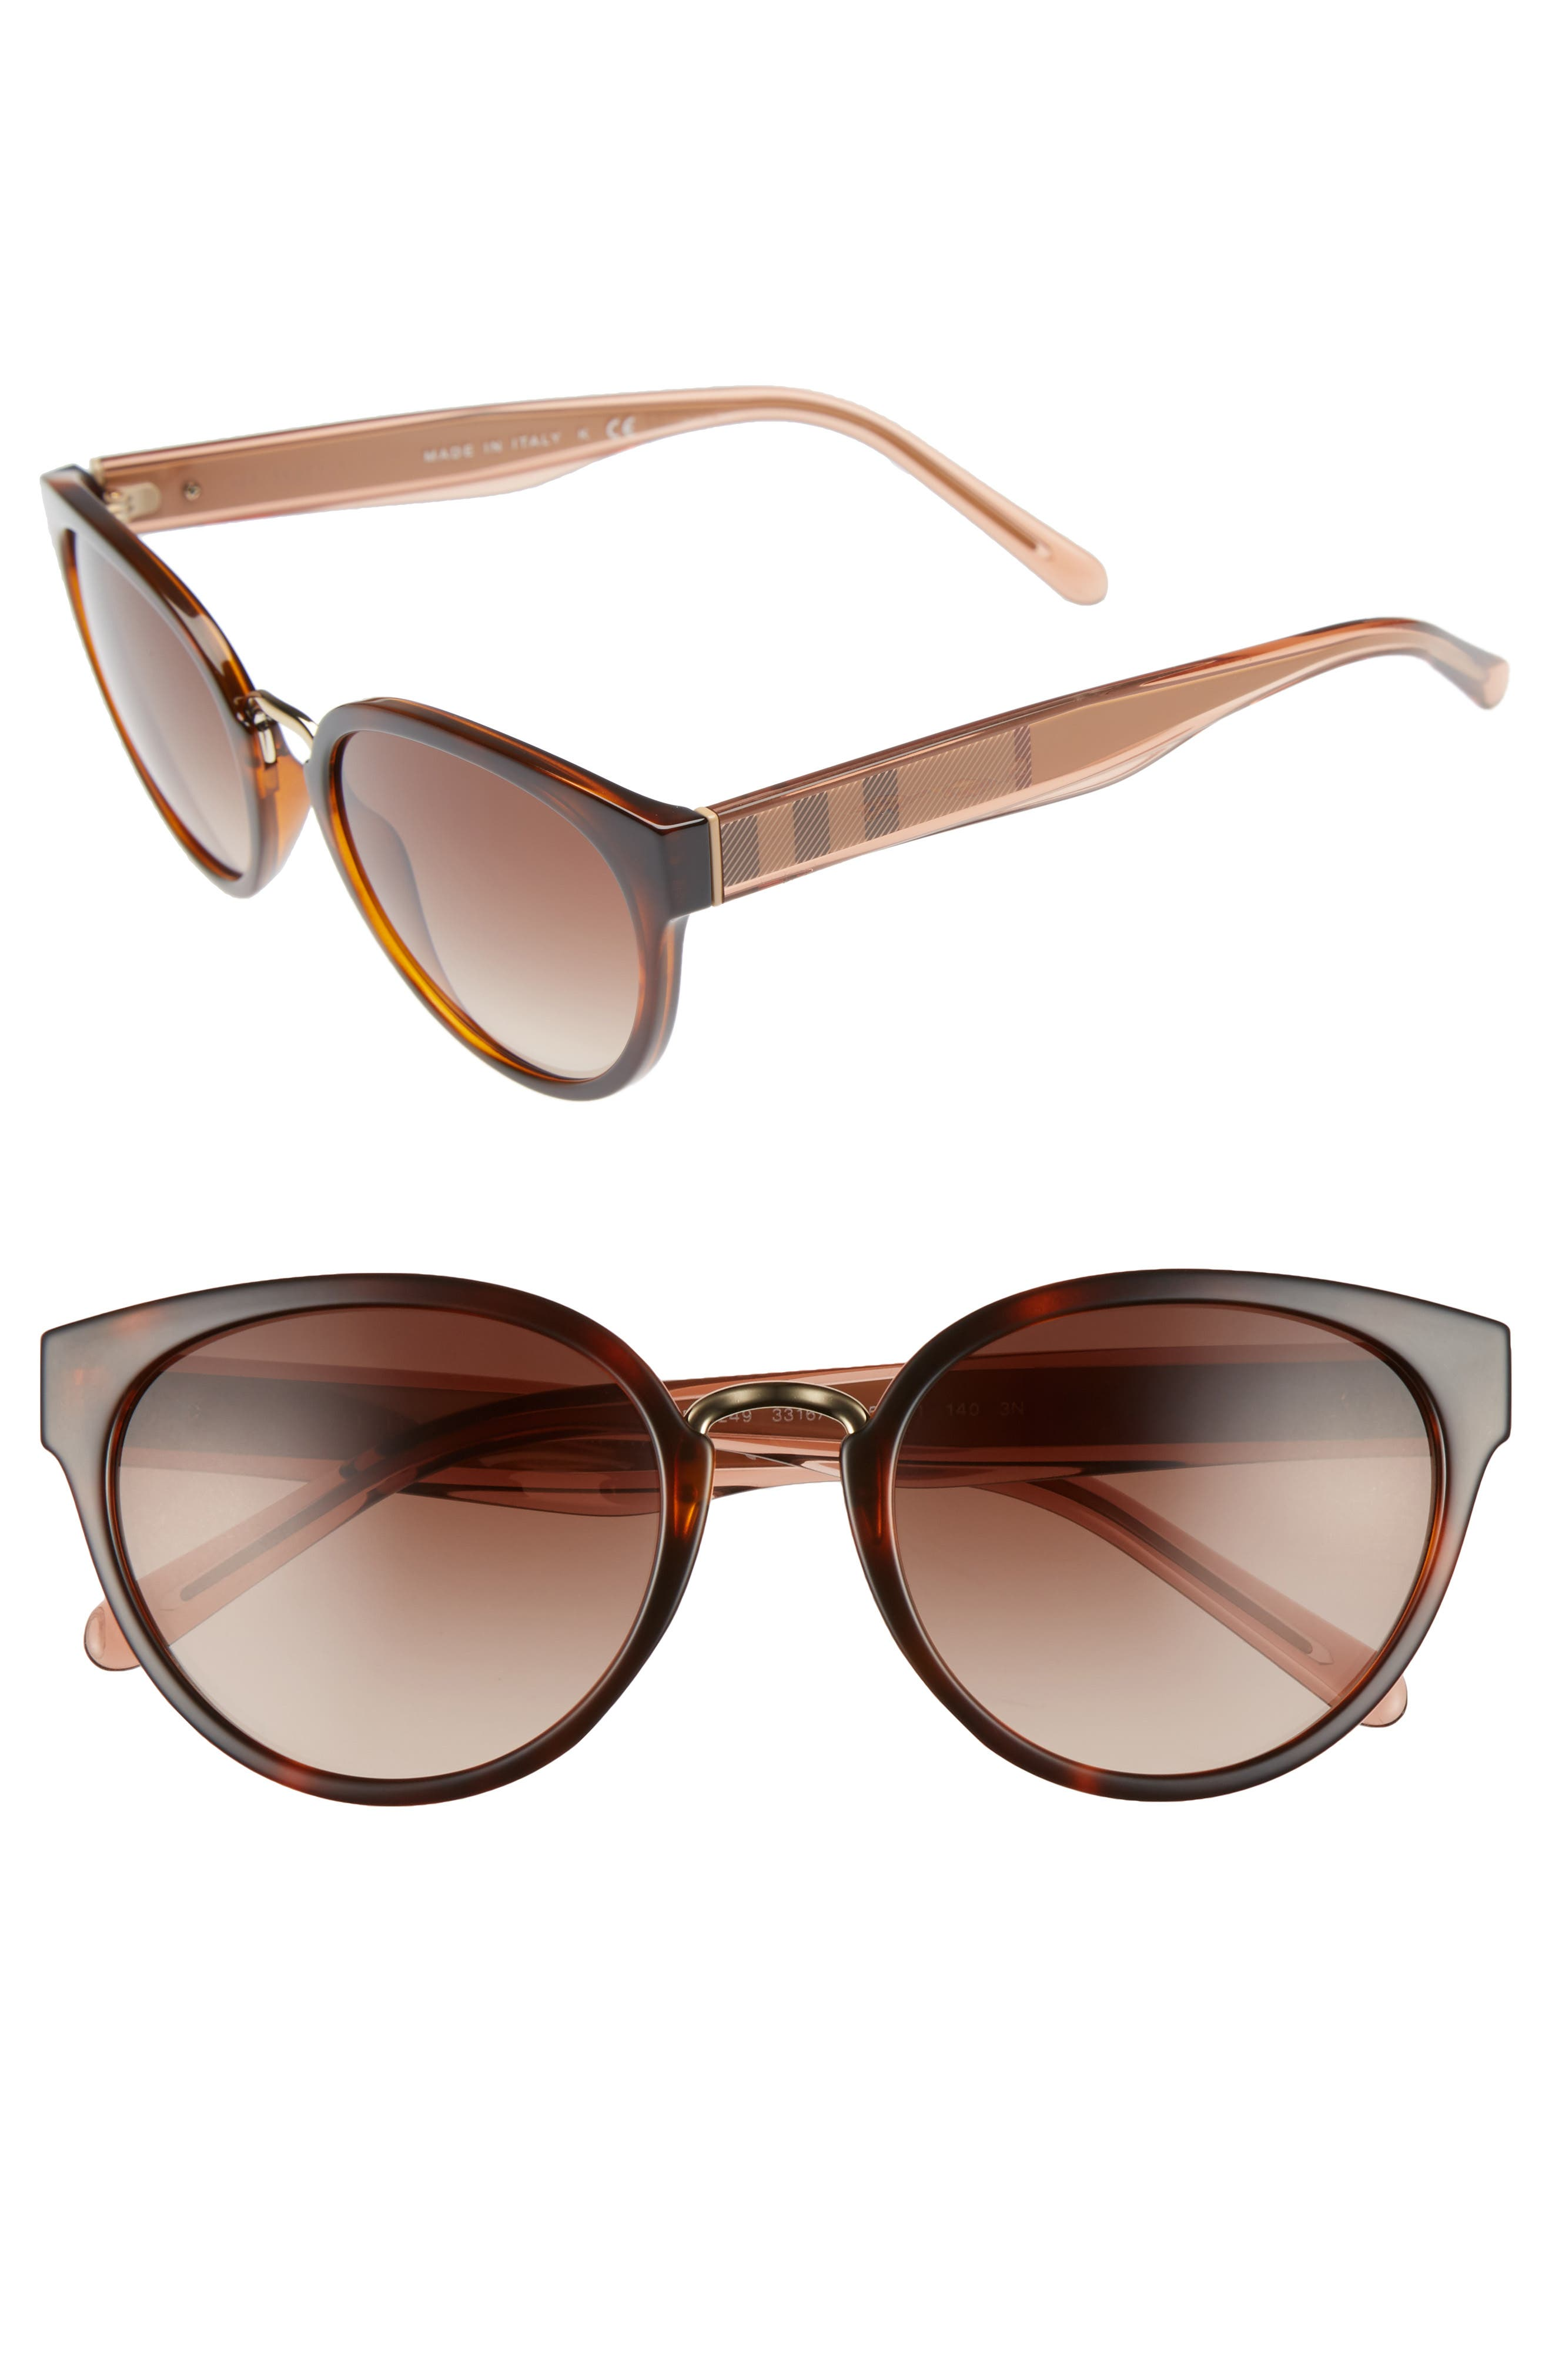 53mm Gradient Cat Eye Sunglasses,                             Main thumbnail 1, color,                             Brown Havana